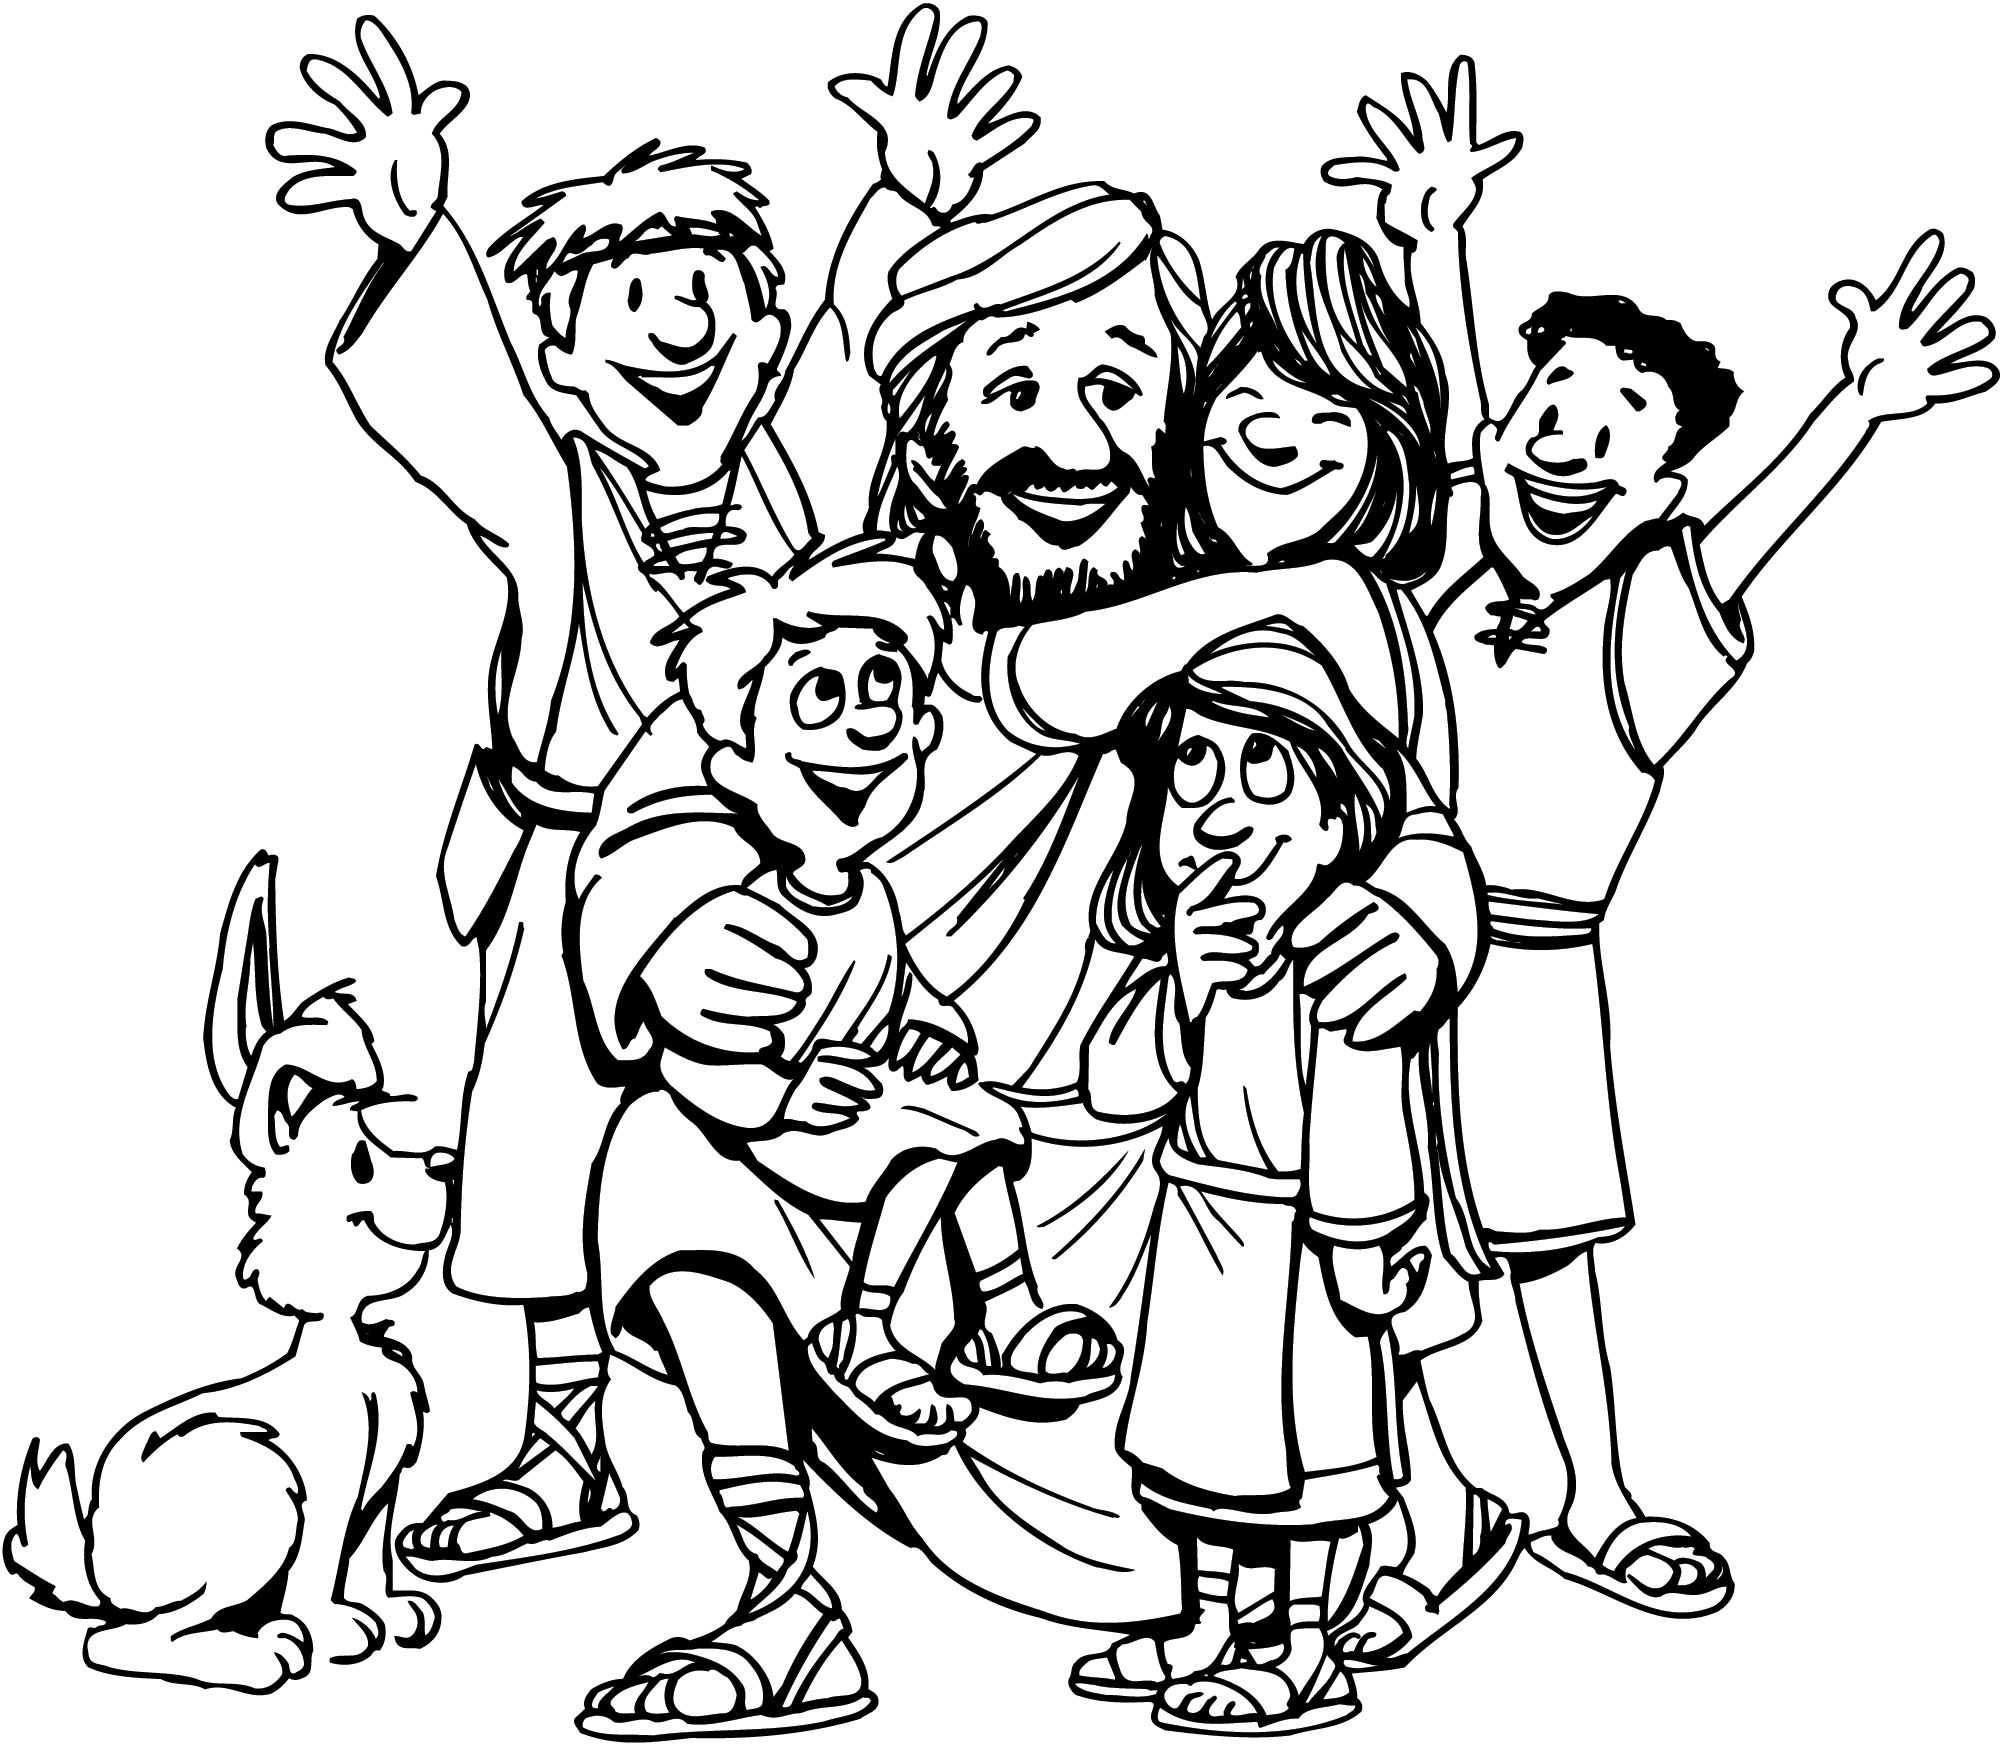 Uncategorized Jesus Coloring Pages For Kids jesus and children coloring page sunday school pages page